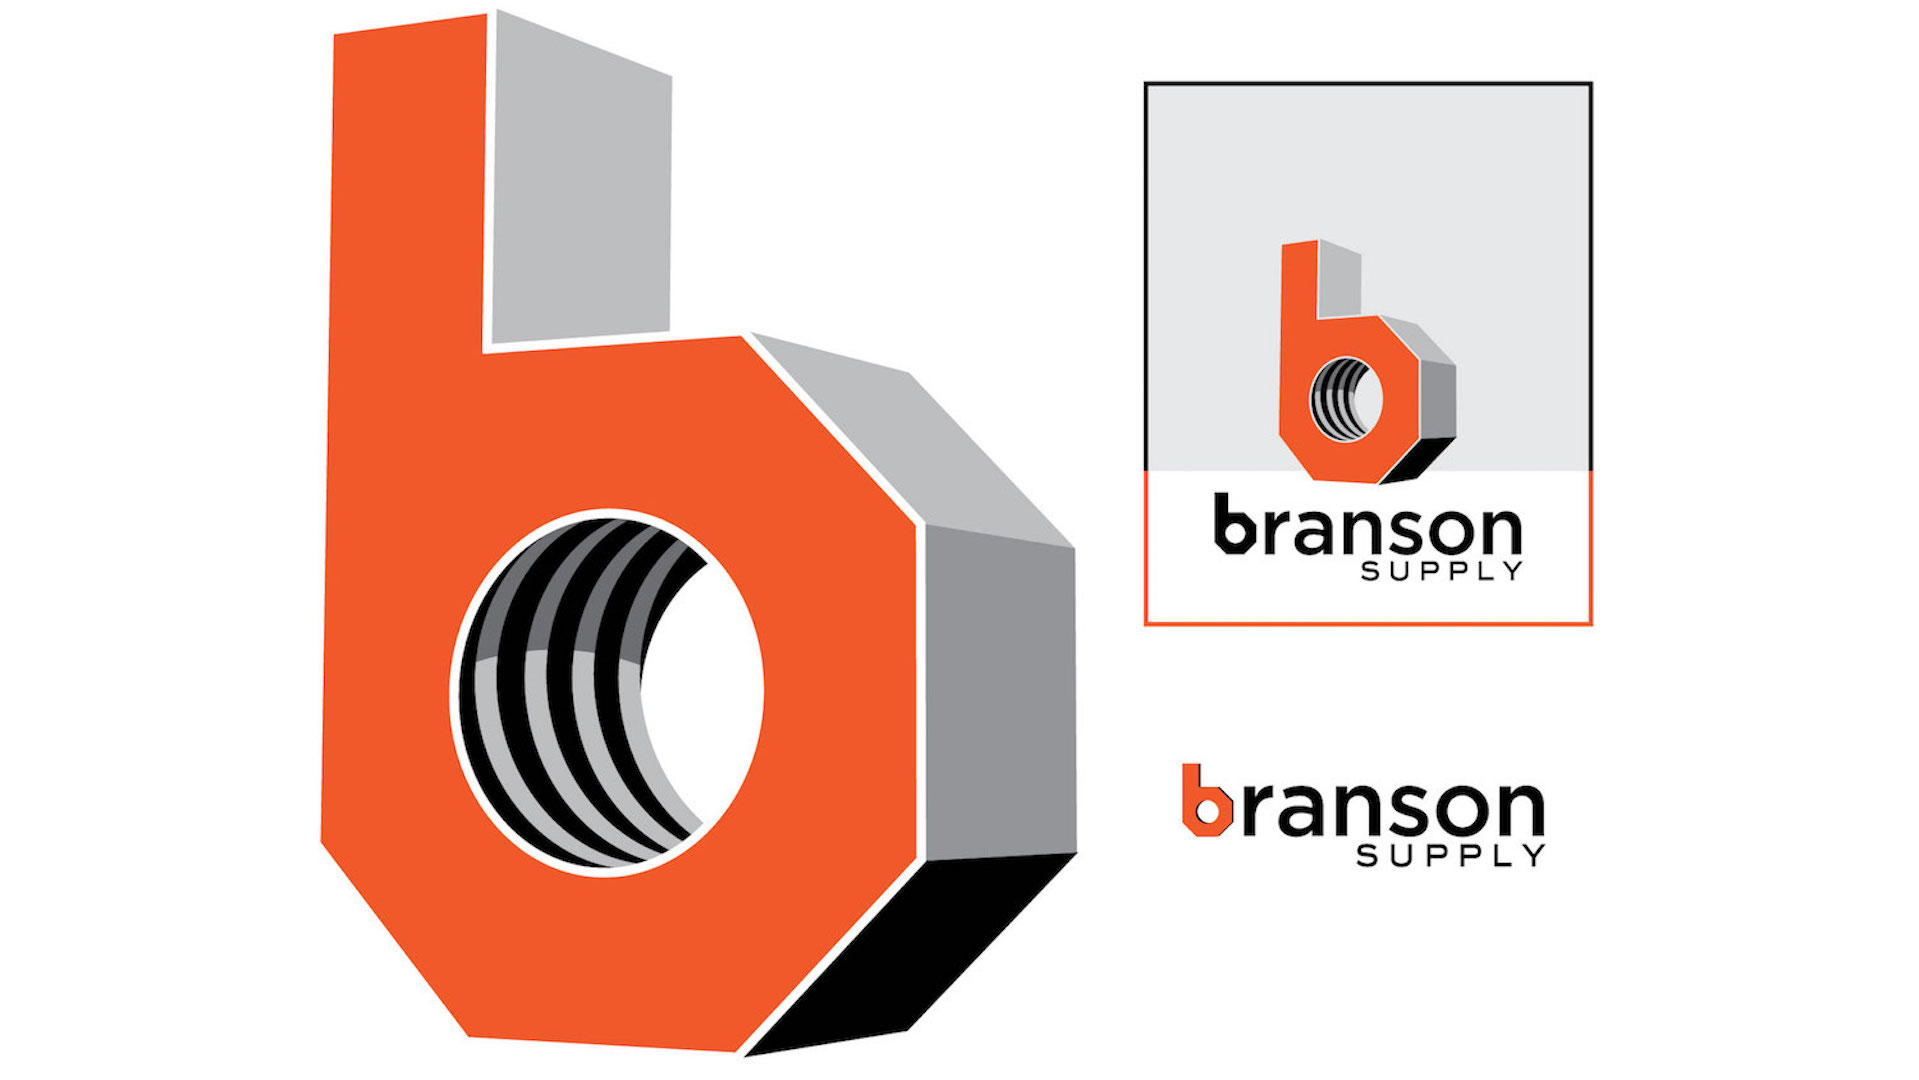 Branson Supply branding design and marketing consultation.